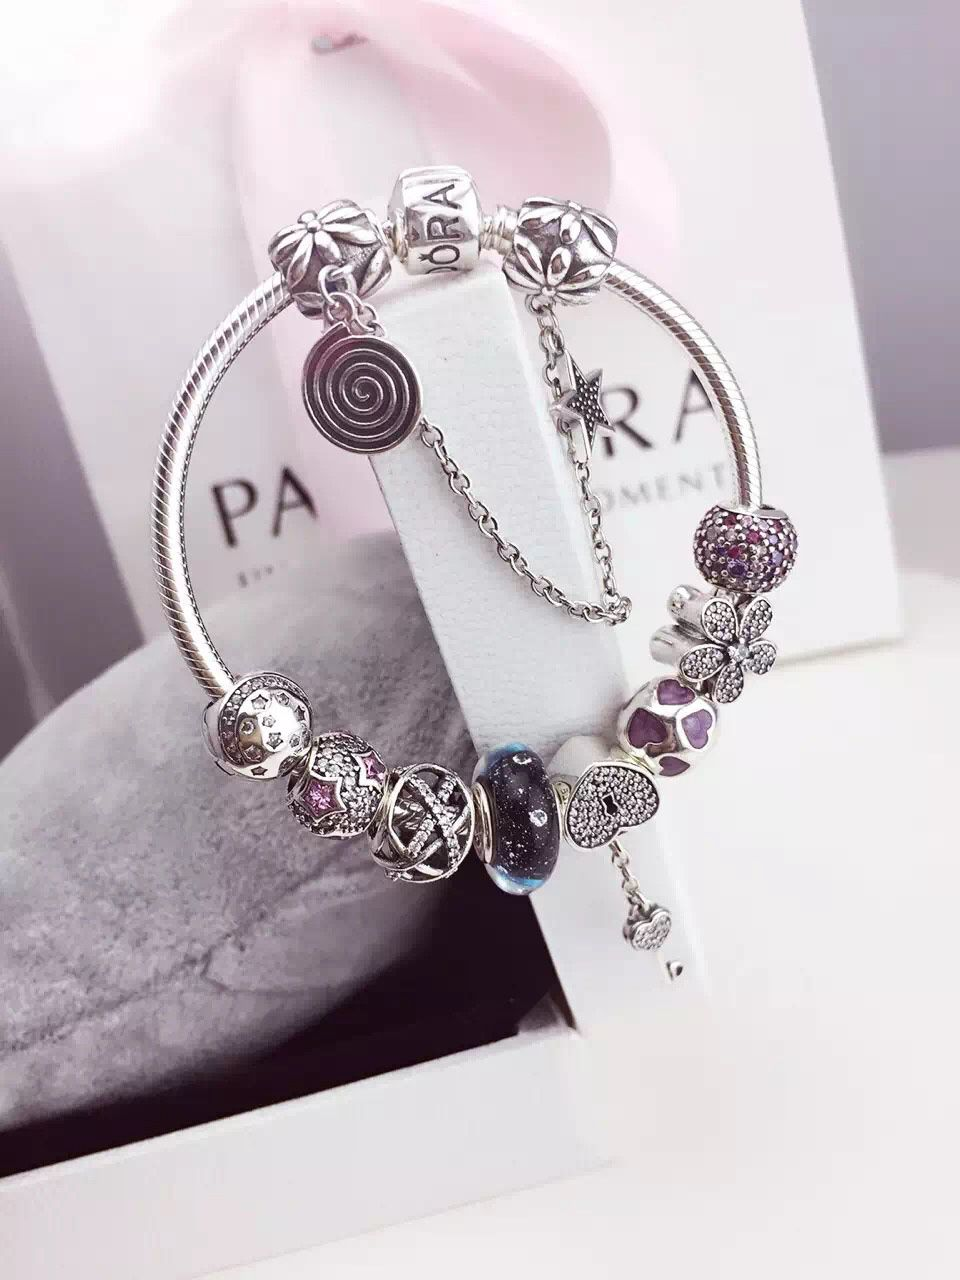 50 Off 239 Pandora Charm Bracelet Purple Blue Hot